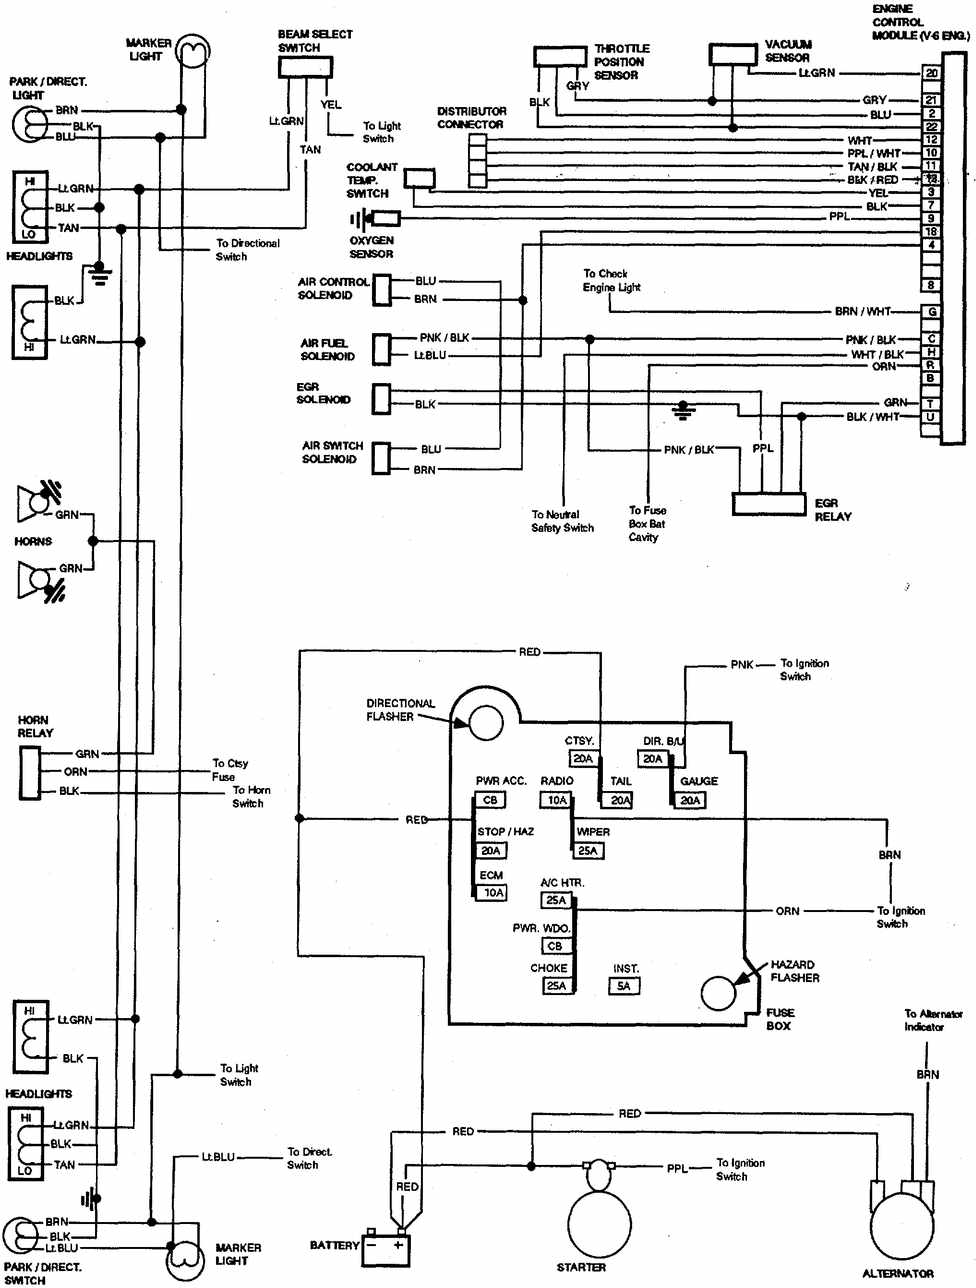 hight resolution of chevrolet v8 trucks 1981 1987 electrical wiring diagram 1986 k5 blazer fuse box diagram 1984 k5